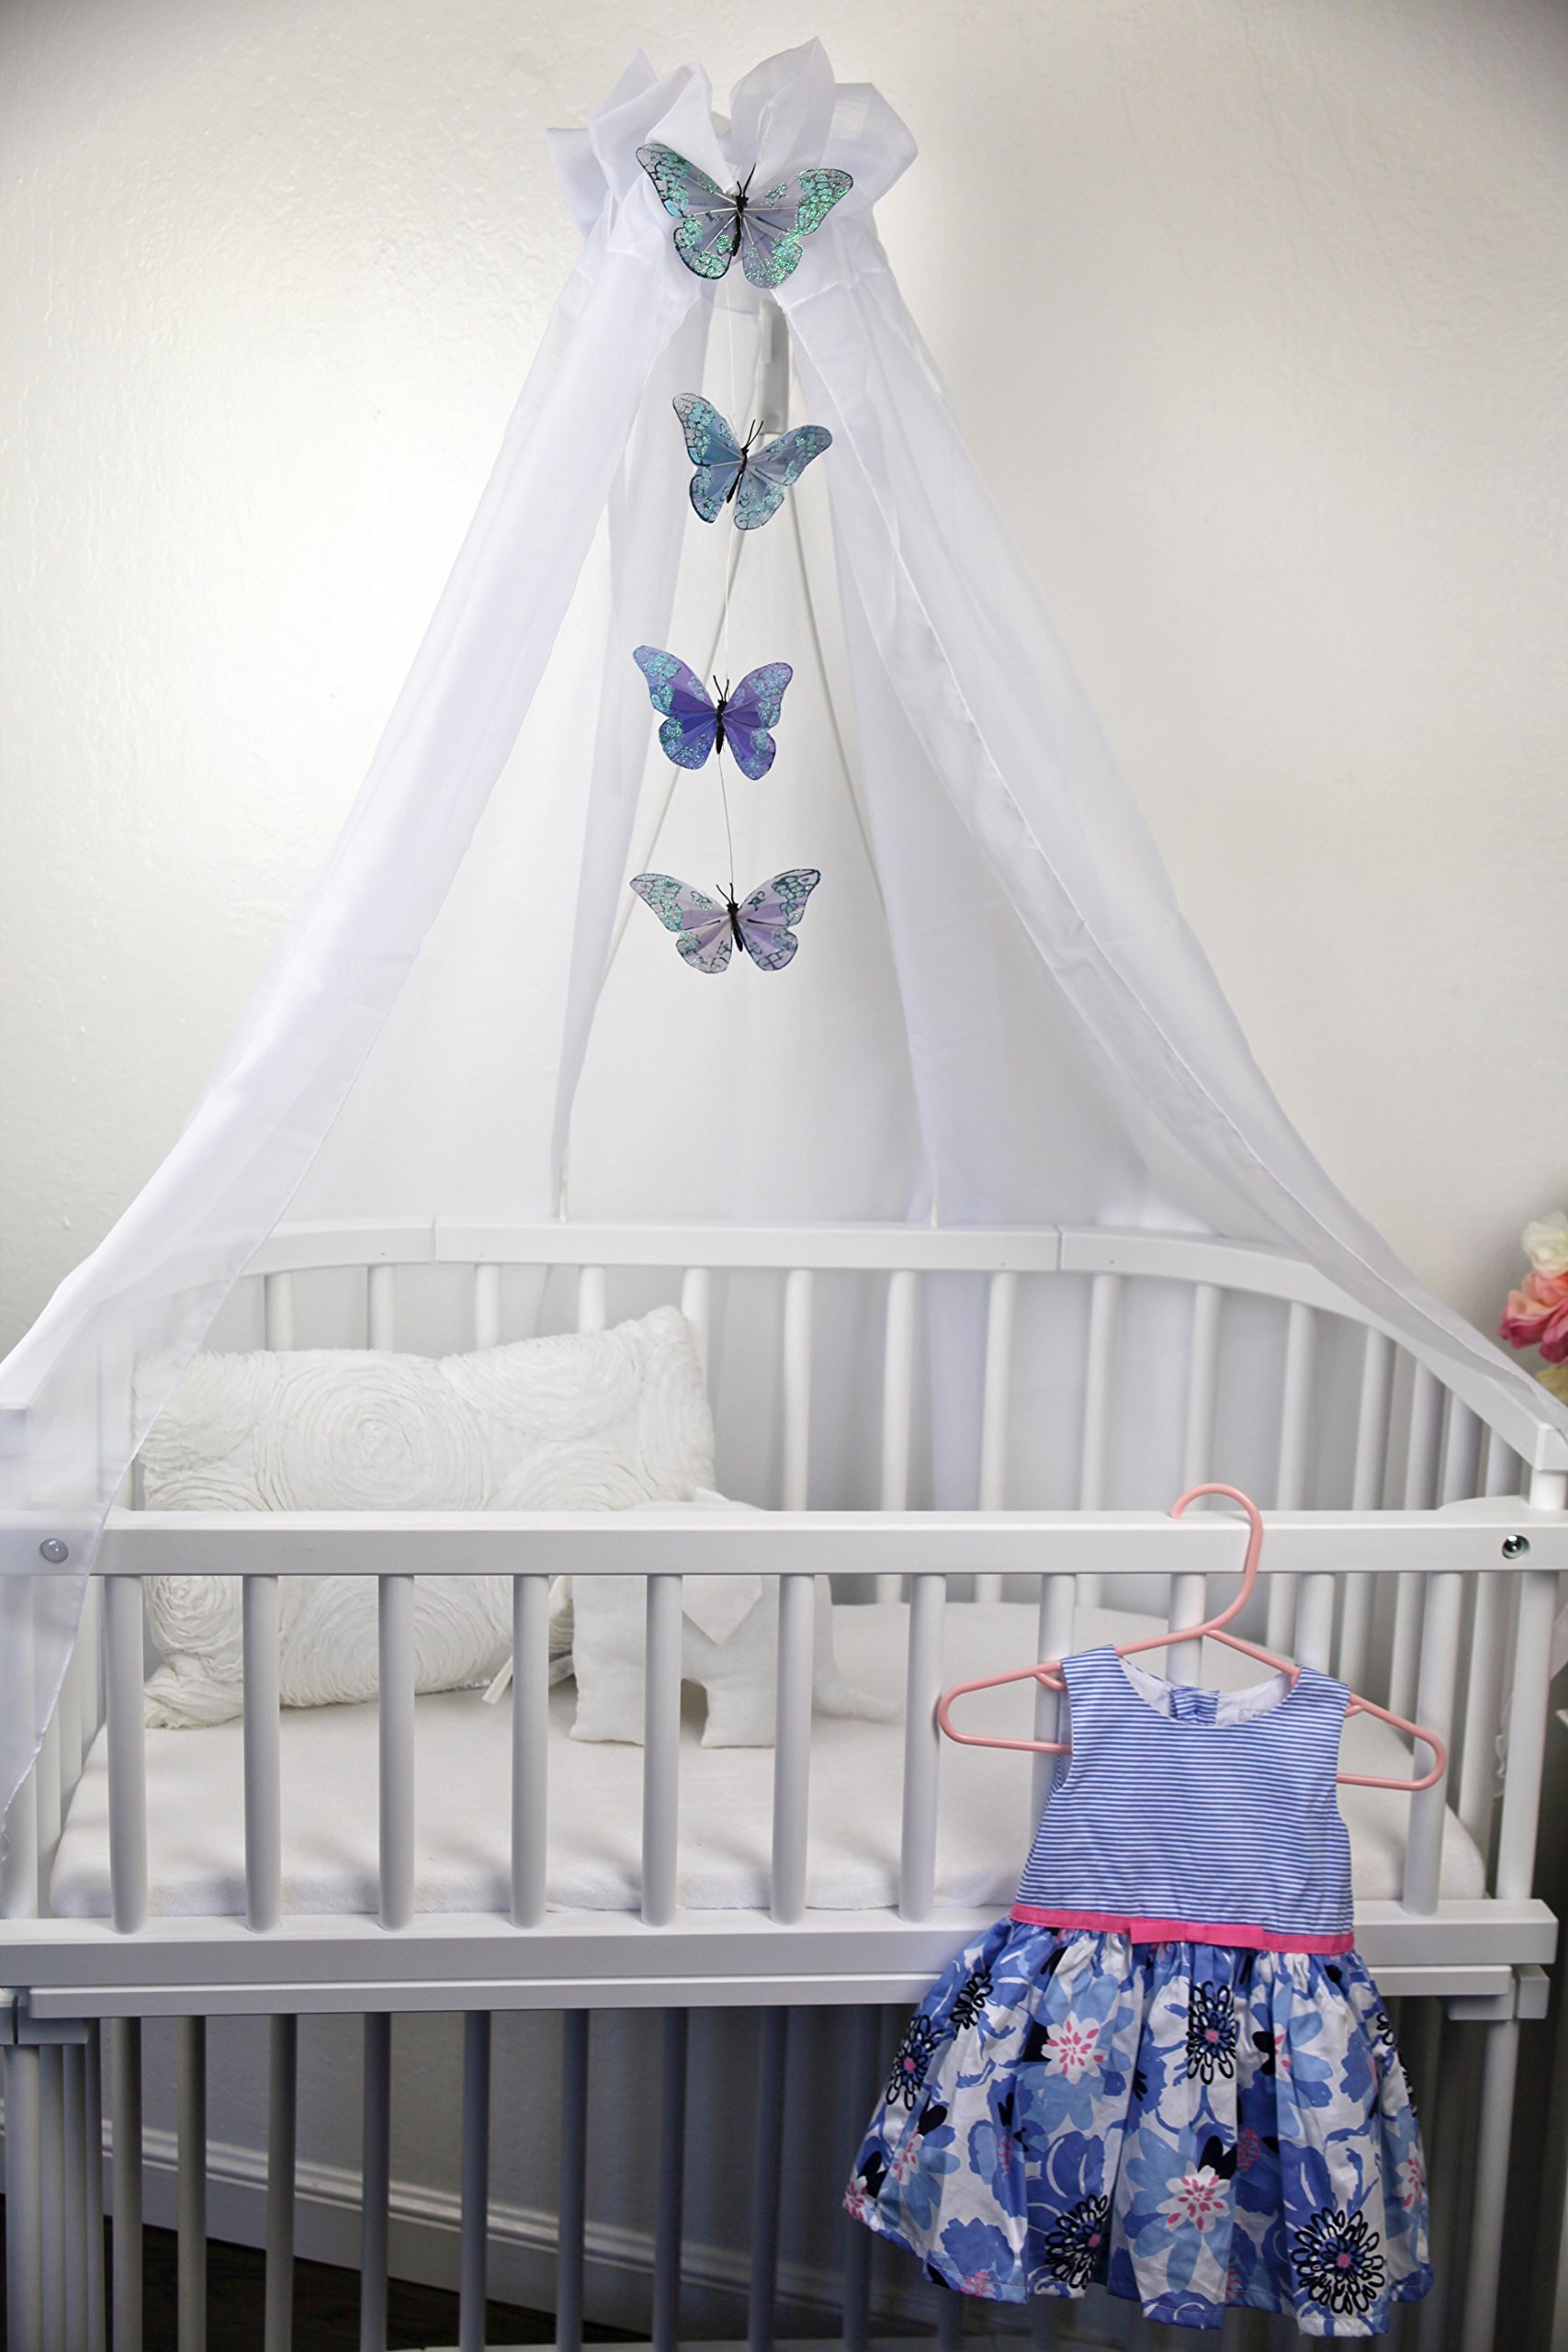 Canopy for babybay - All White by babybay (Image #3)